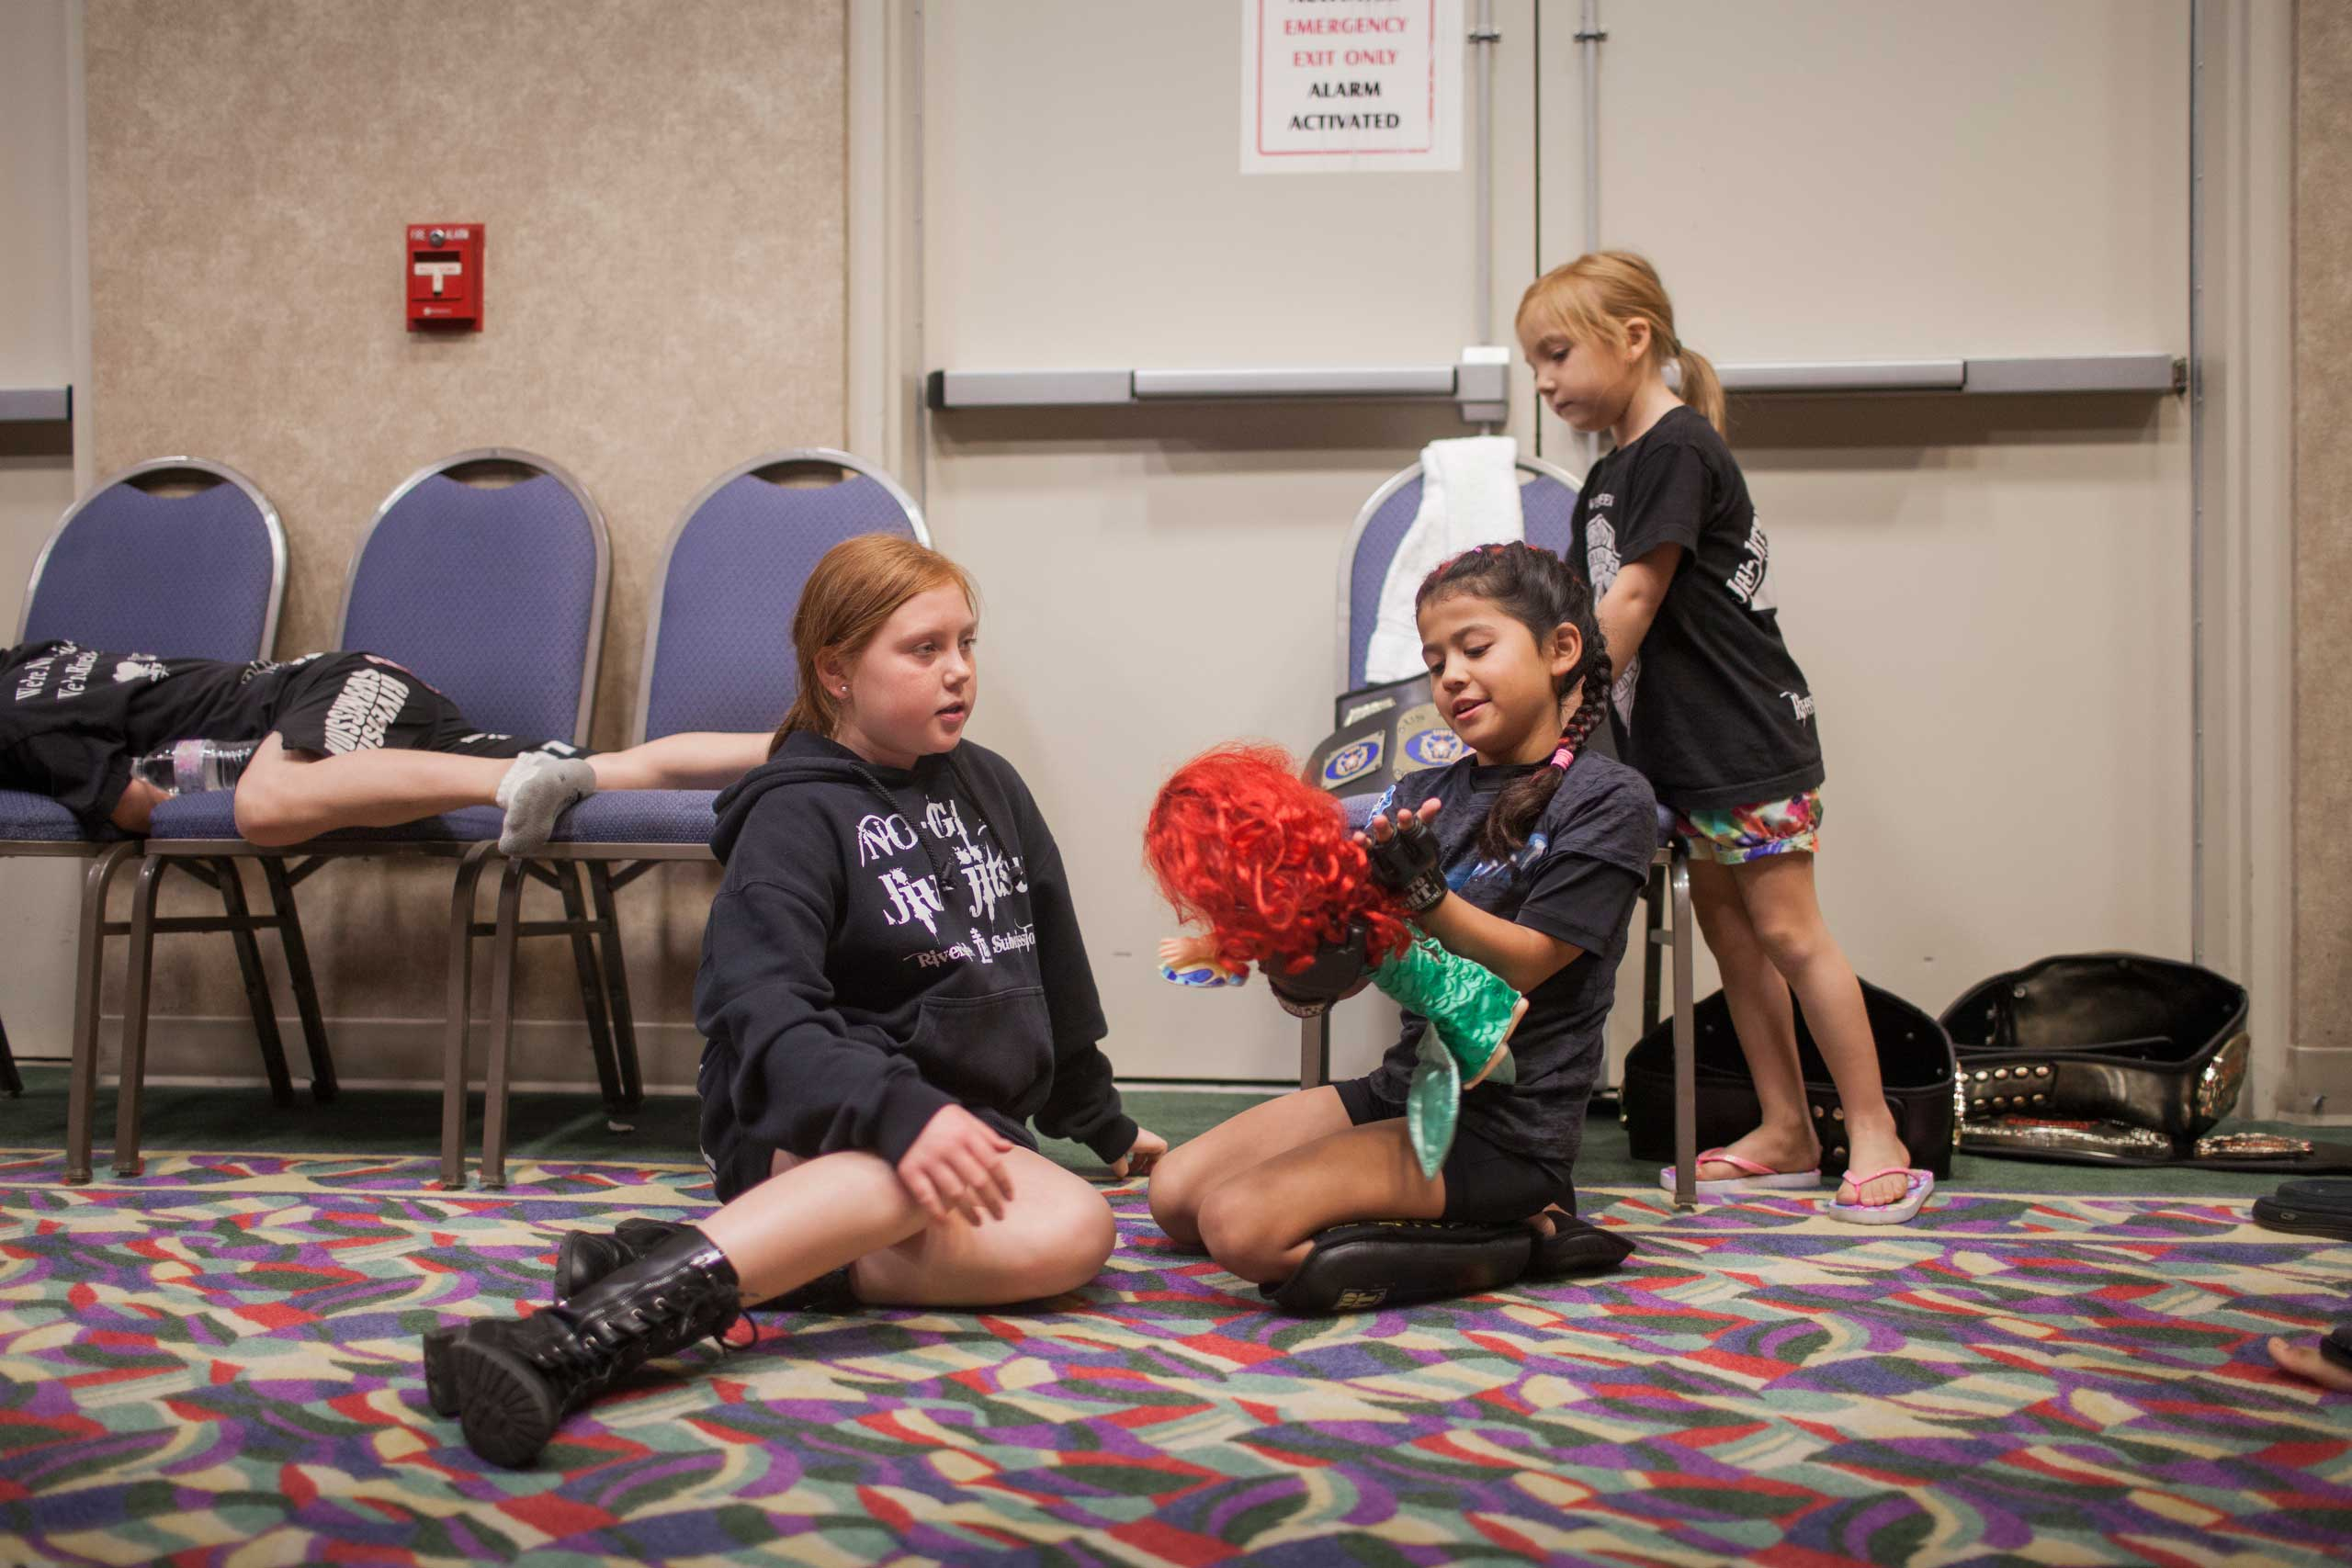 Regina  Black Widow  Awana, 7, playing with her favorite doll, Ariel, with friends before her fights. She won all fights this night. United States Fight League All-star Pankration show at Blue Water Casino in Parker, Arizona, Oct. 2013.